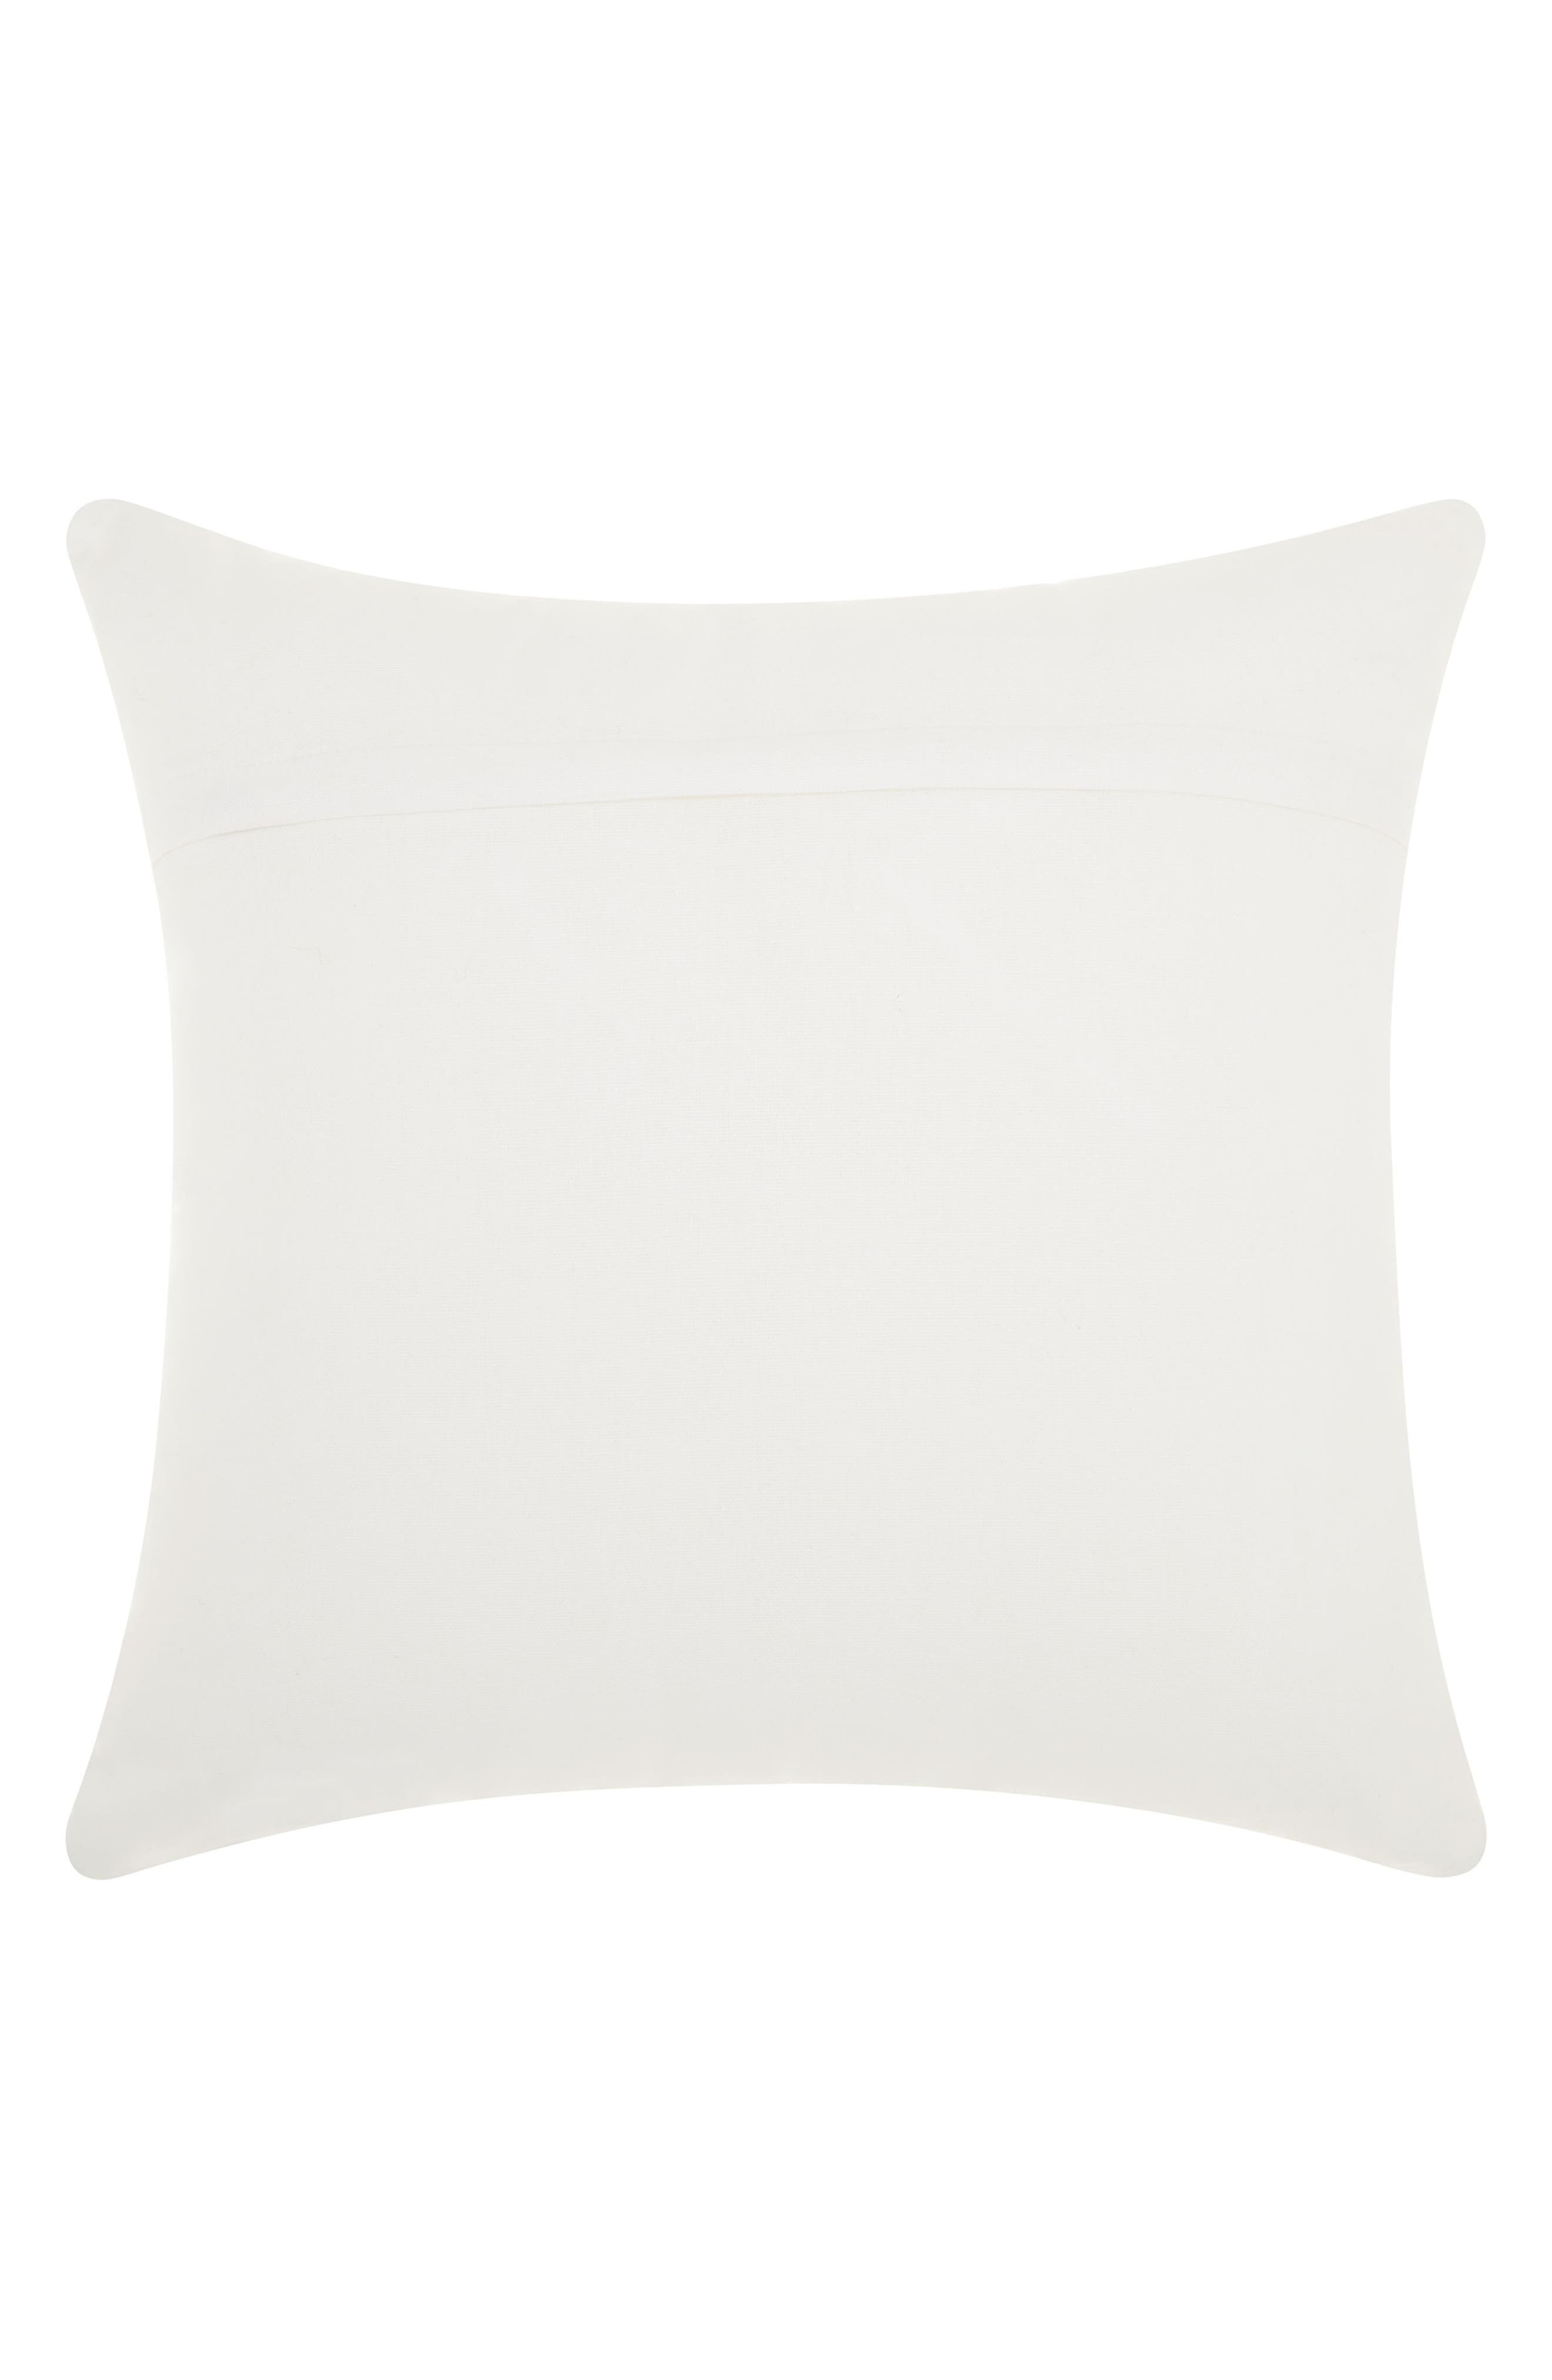 Sequin Dalmatian Accent Pillow,                             Alternate thumbnail 2, color,                             White